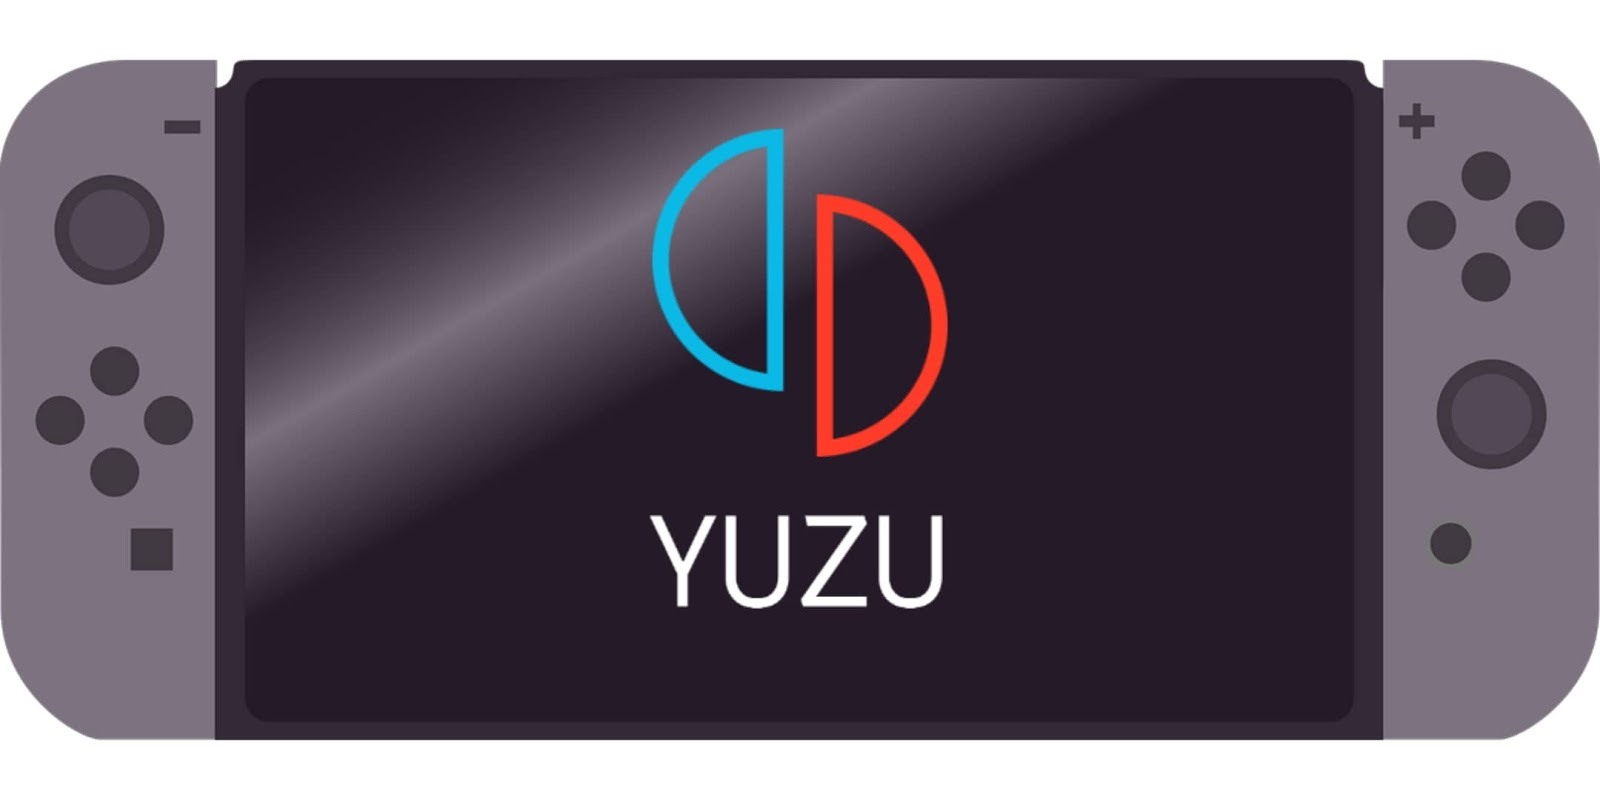 Yuzu the Switch emulator for PC, Complete Guide